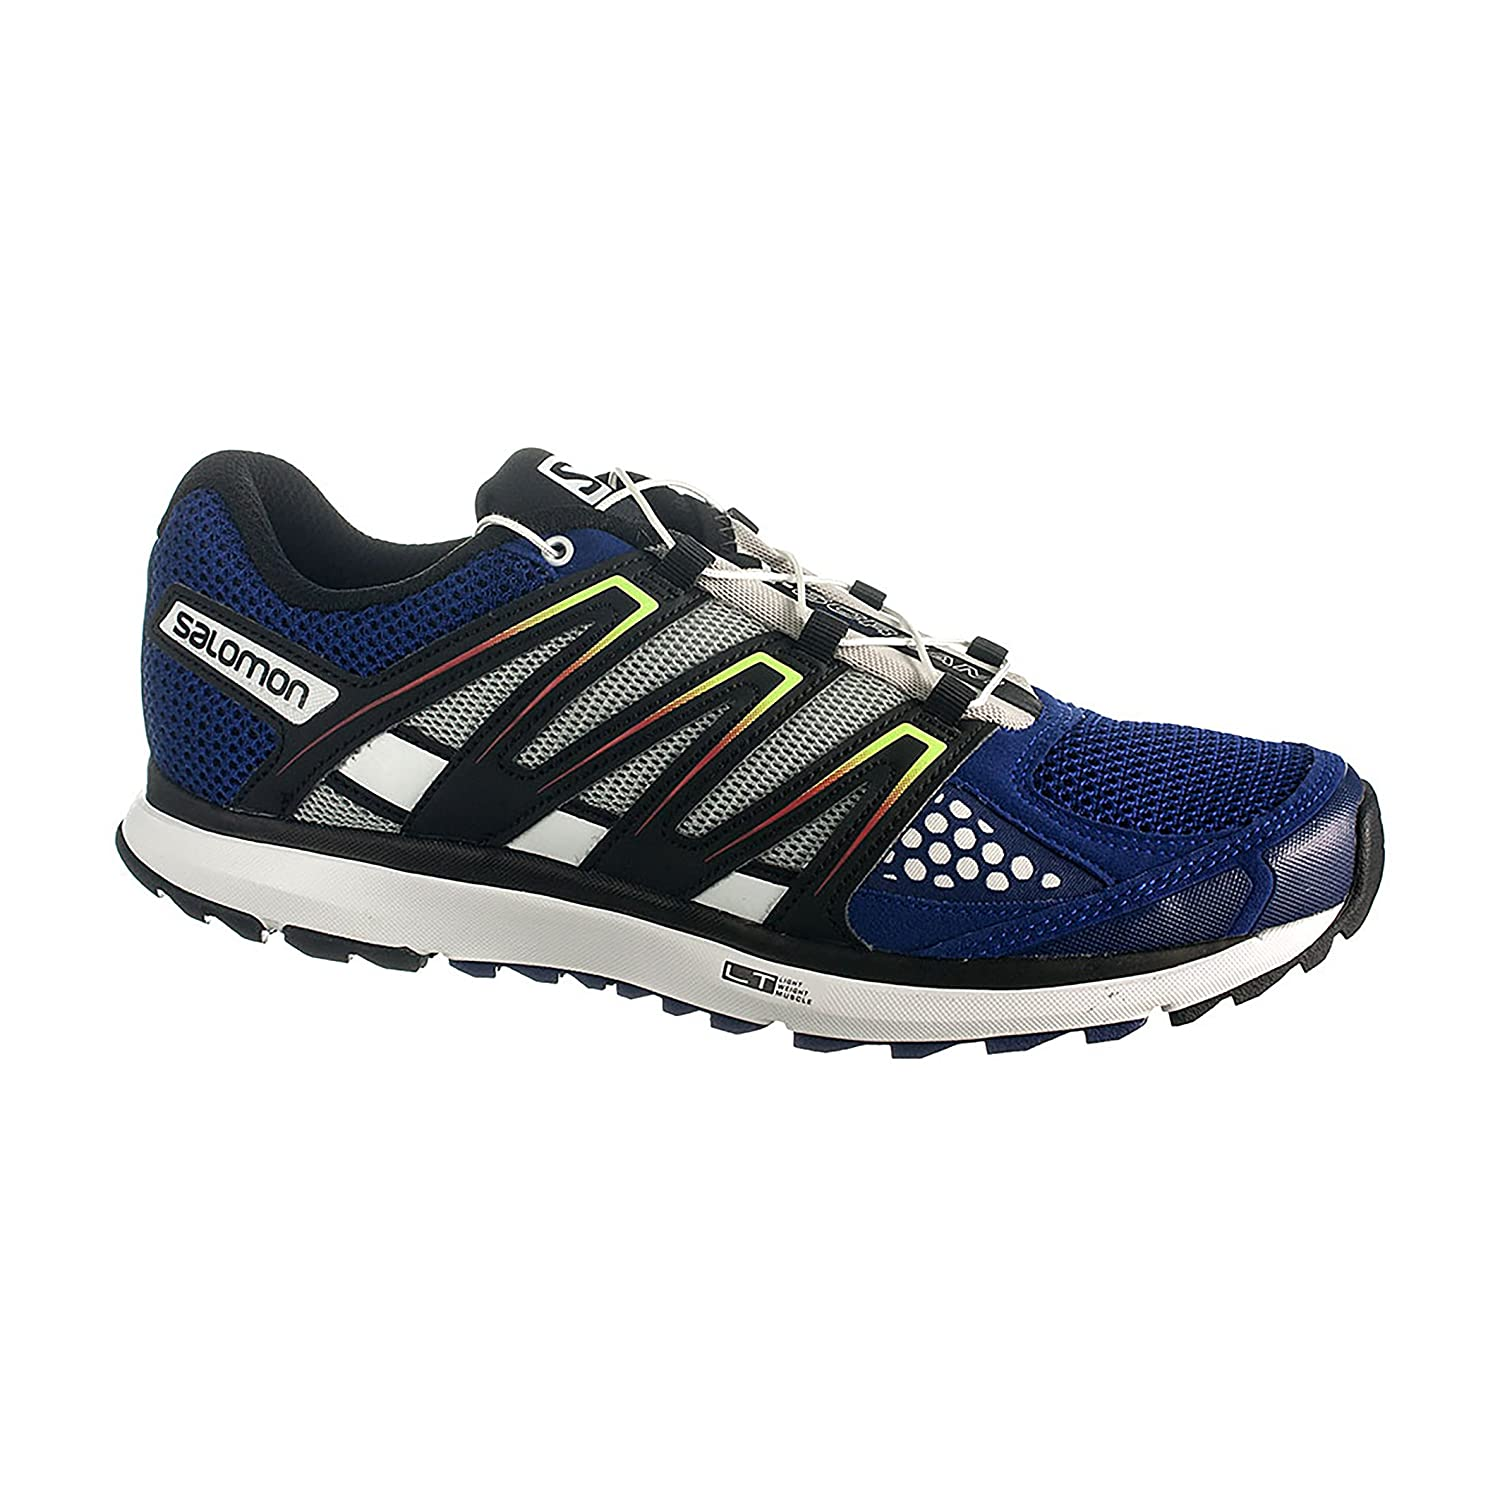 adc6f1a6773b32 Salomon X-Scream Trail Running Shoes - 13.5  Amazon.co.uk  Shoes   Bags